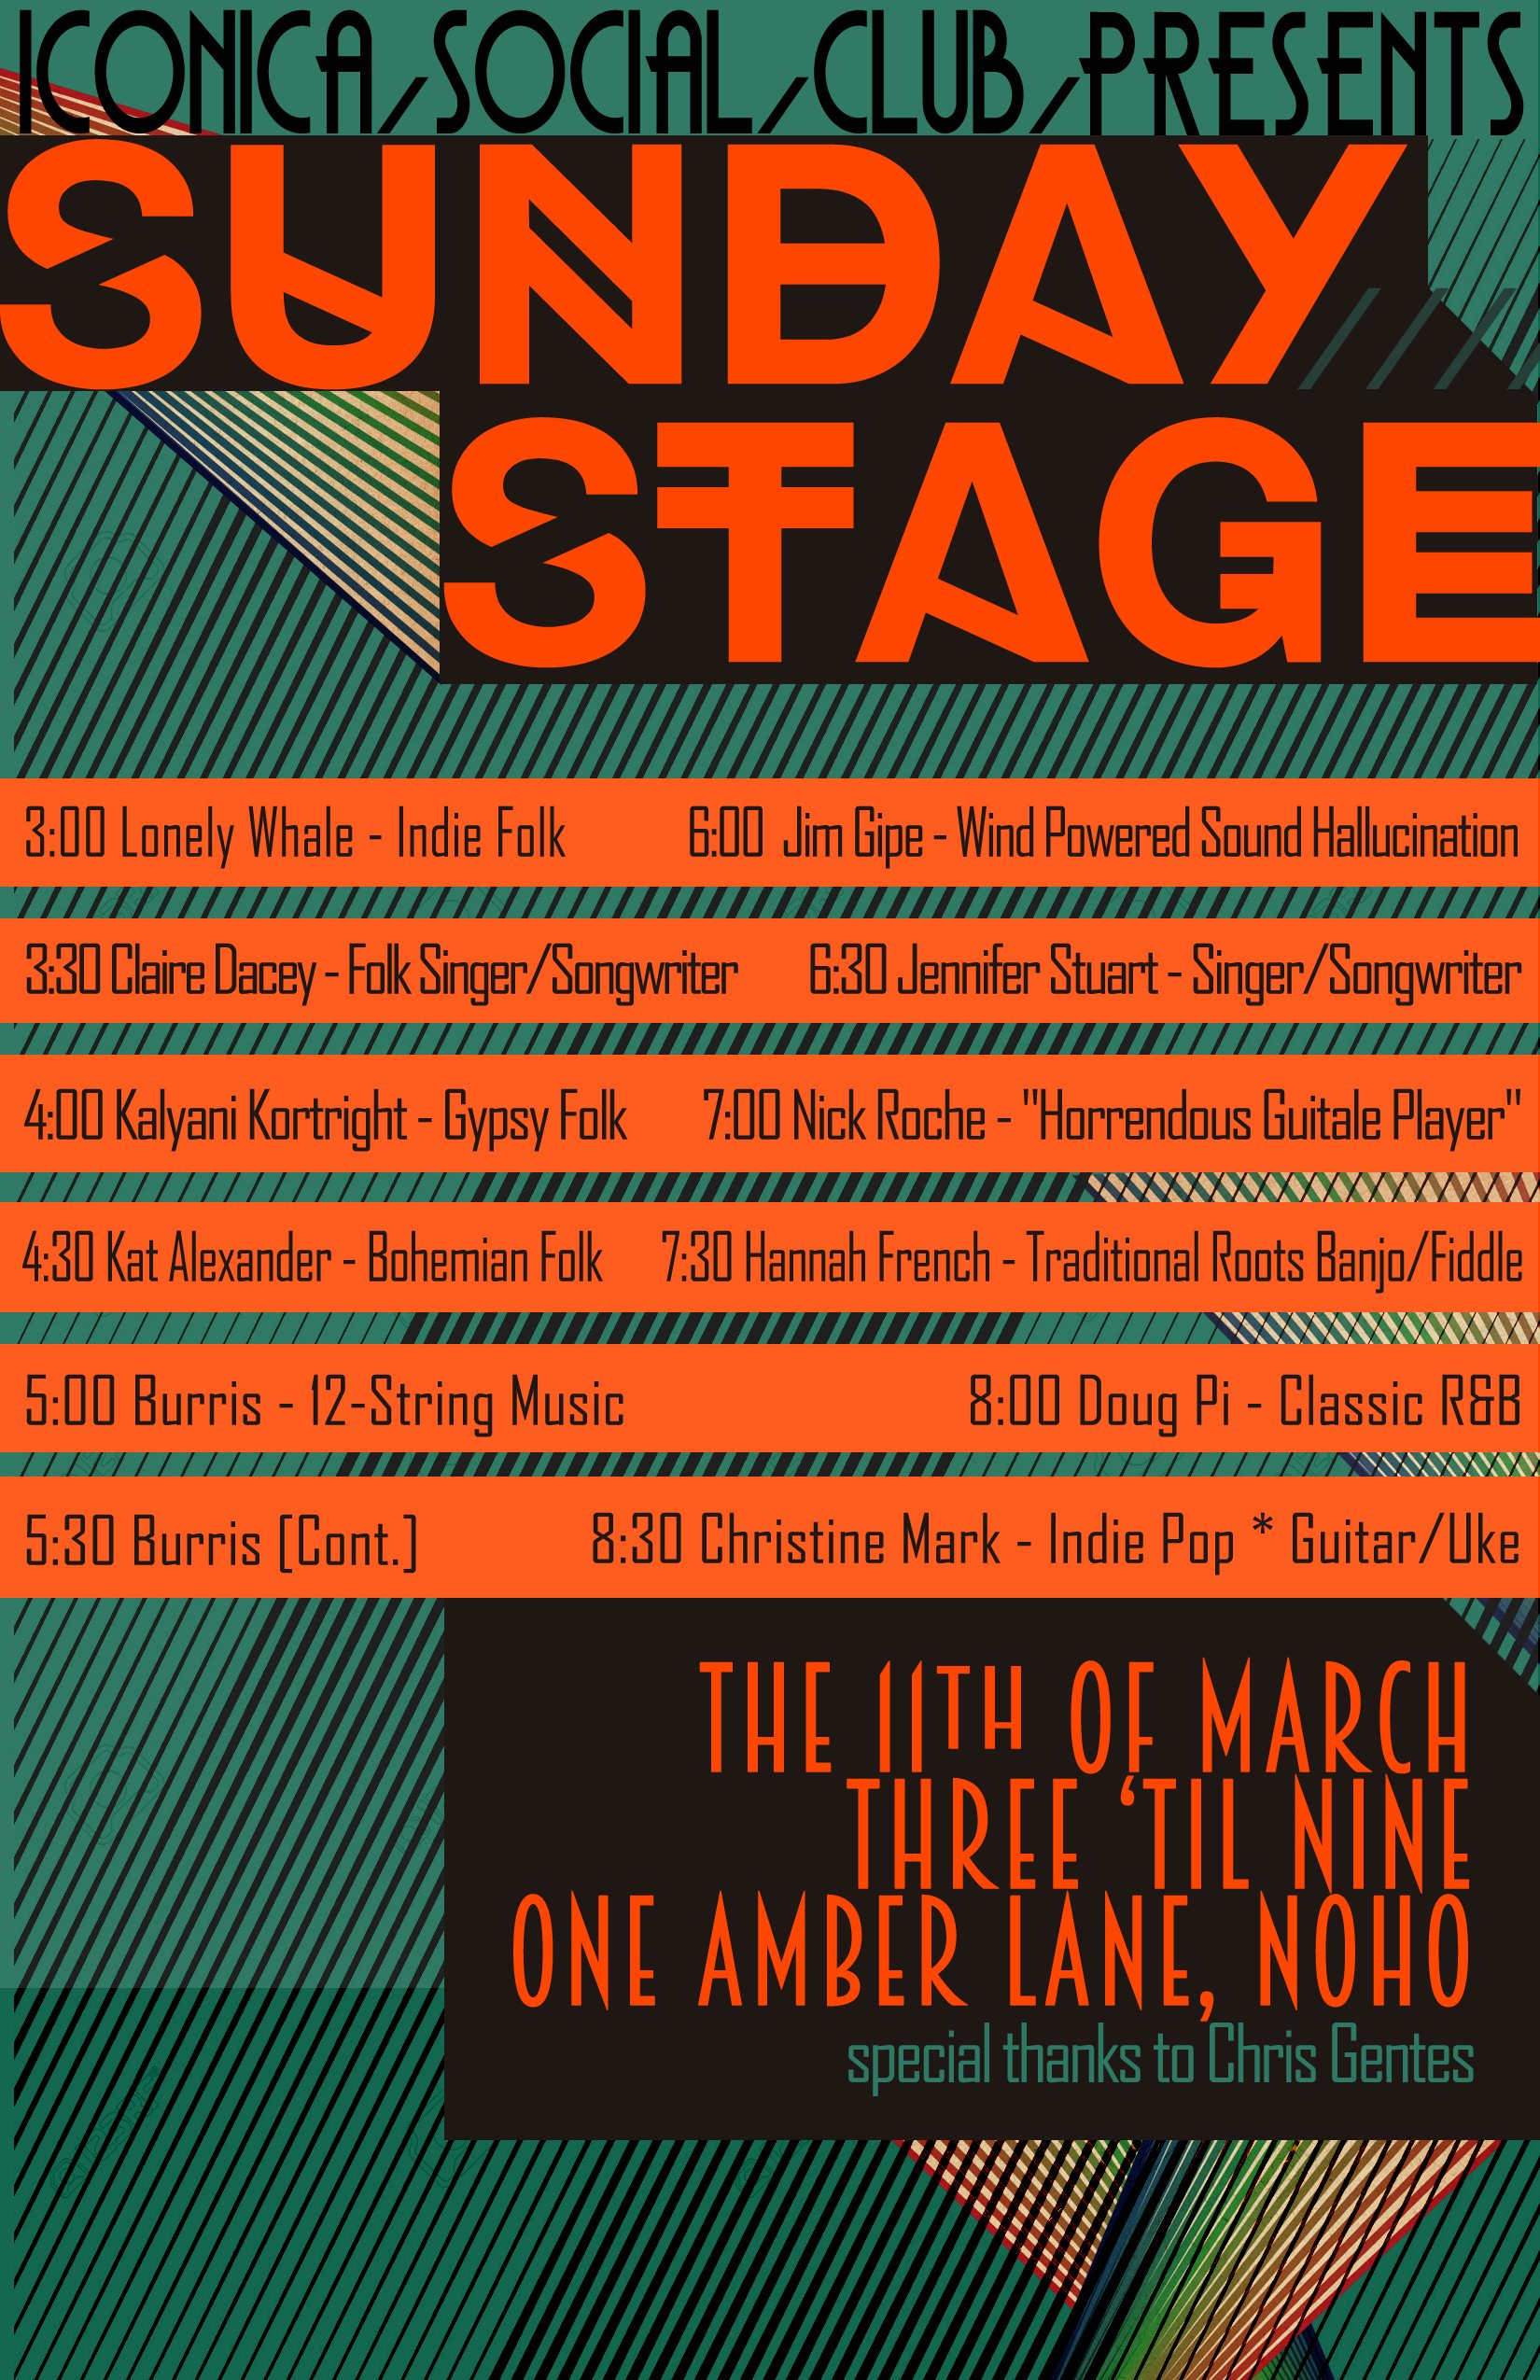 SUNDAY STAGE, 12 Local Musicians Across 6 Hours